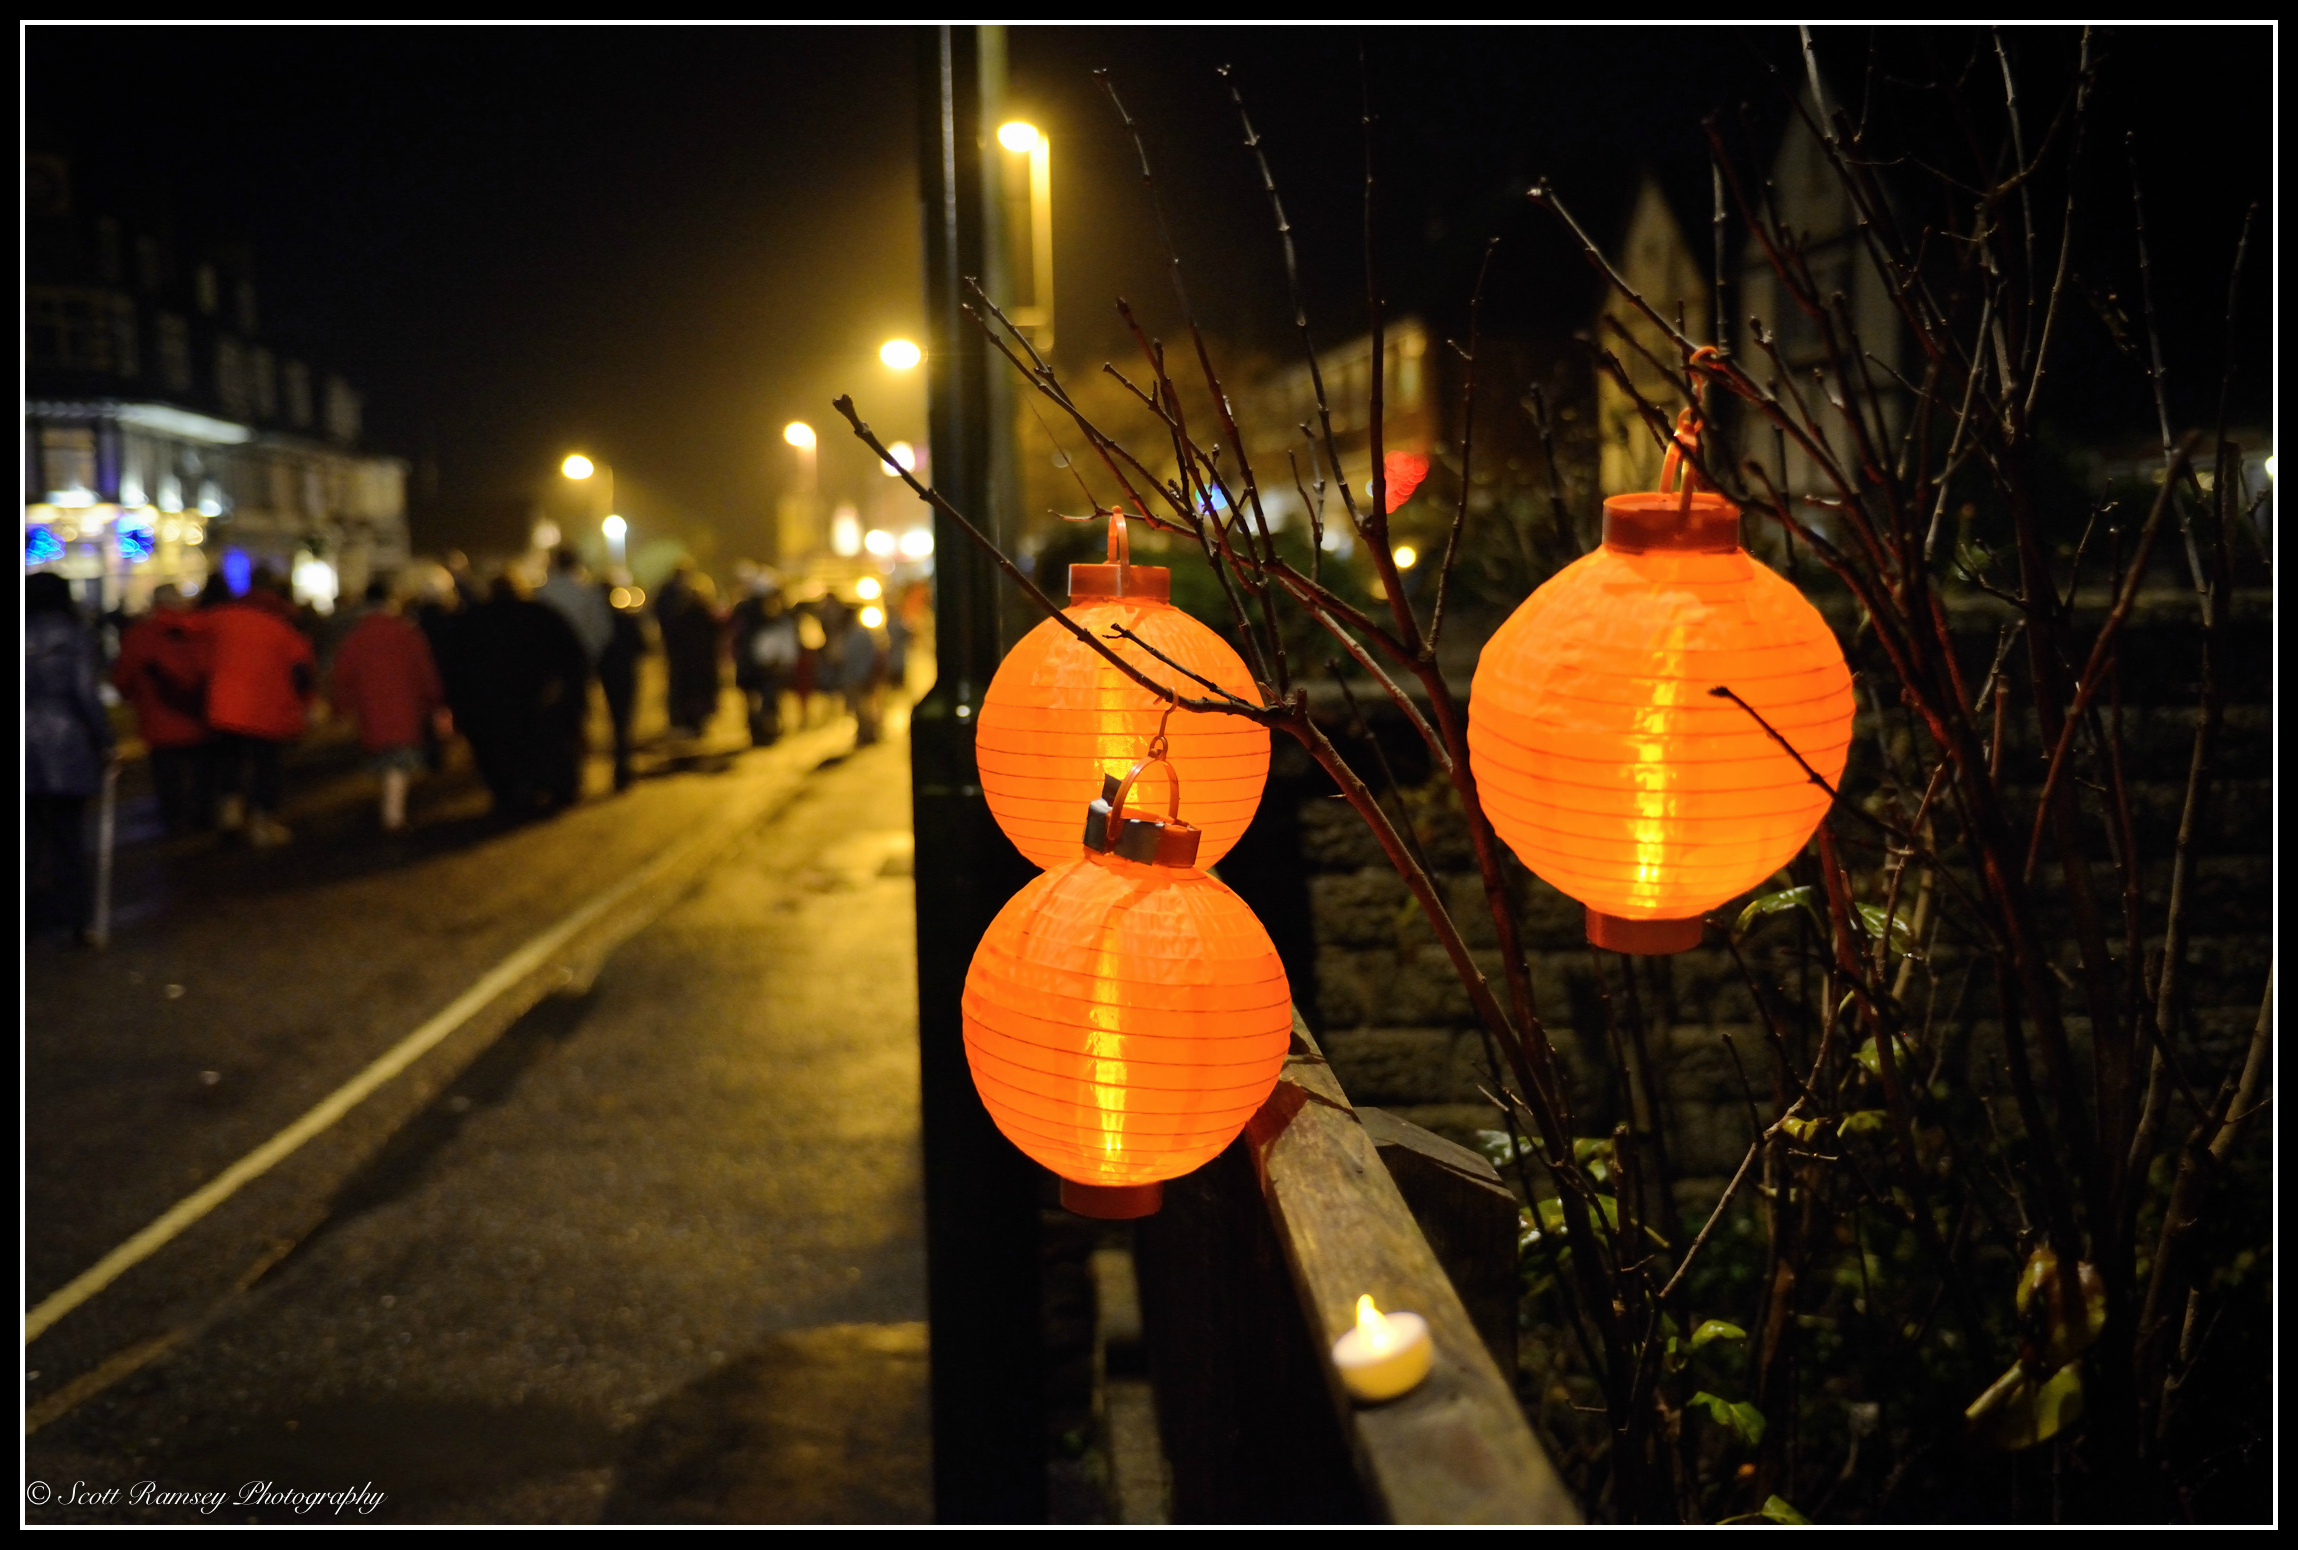 Local residents joined in and helped the East Preston village Christmas celebrations,lanterns hang outside a house in the village.